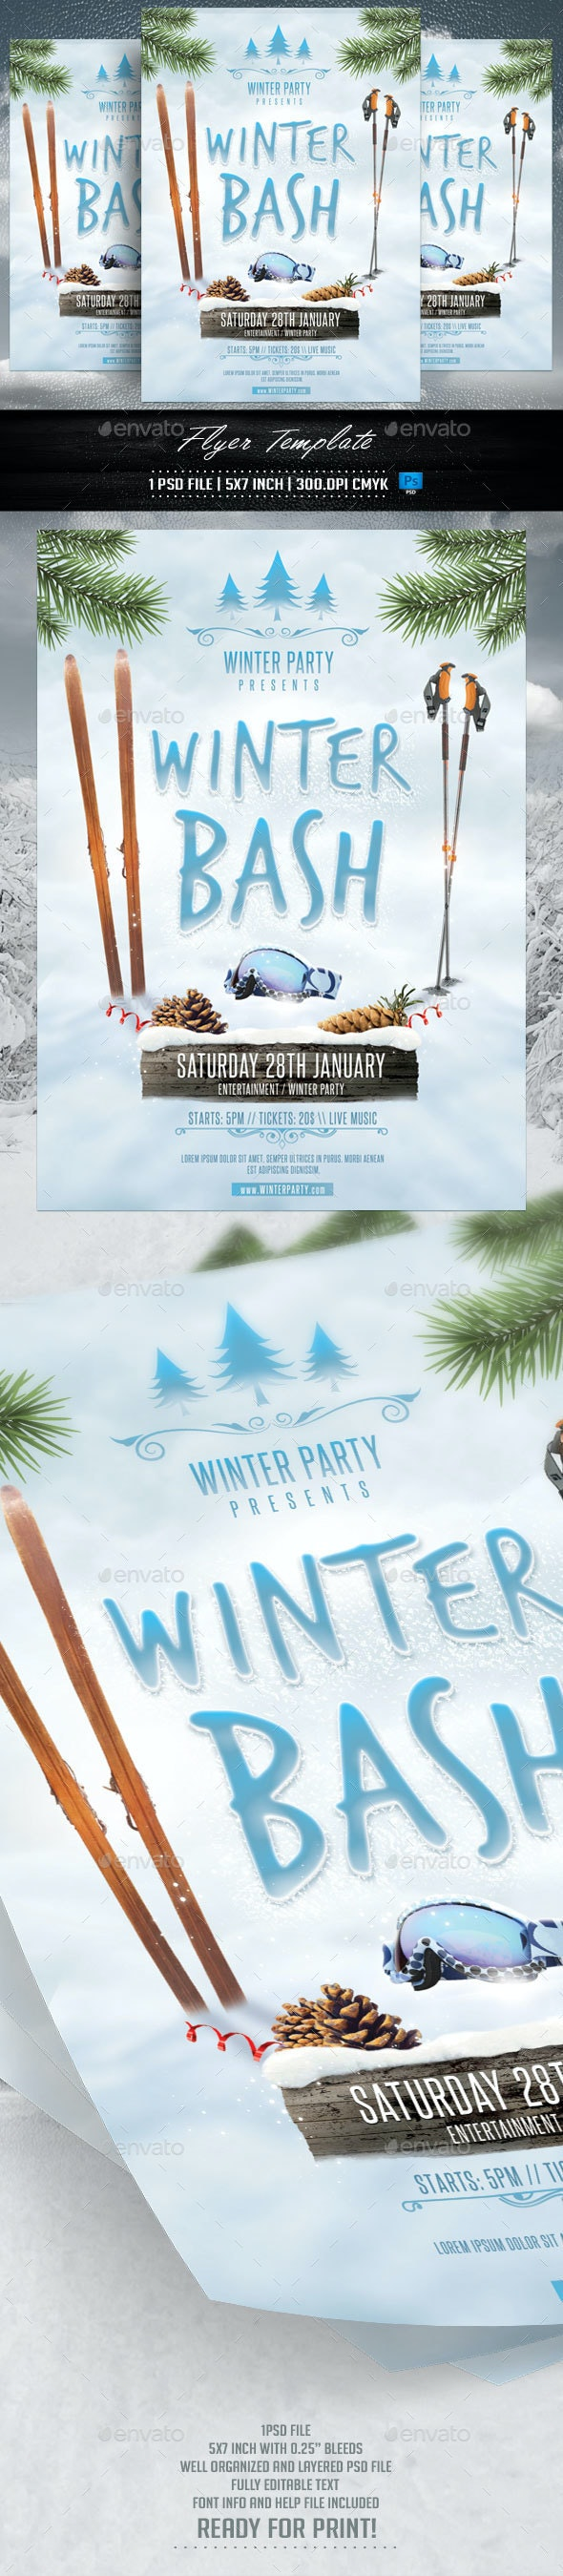 Winter Bash Flyer Template - Flyers Print Templates